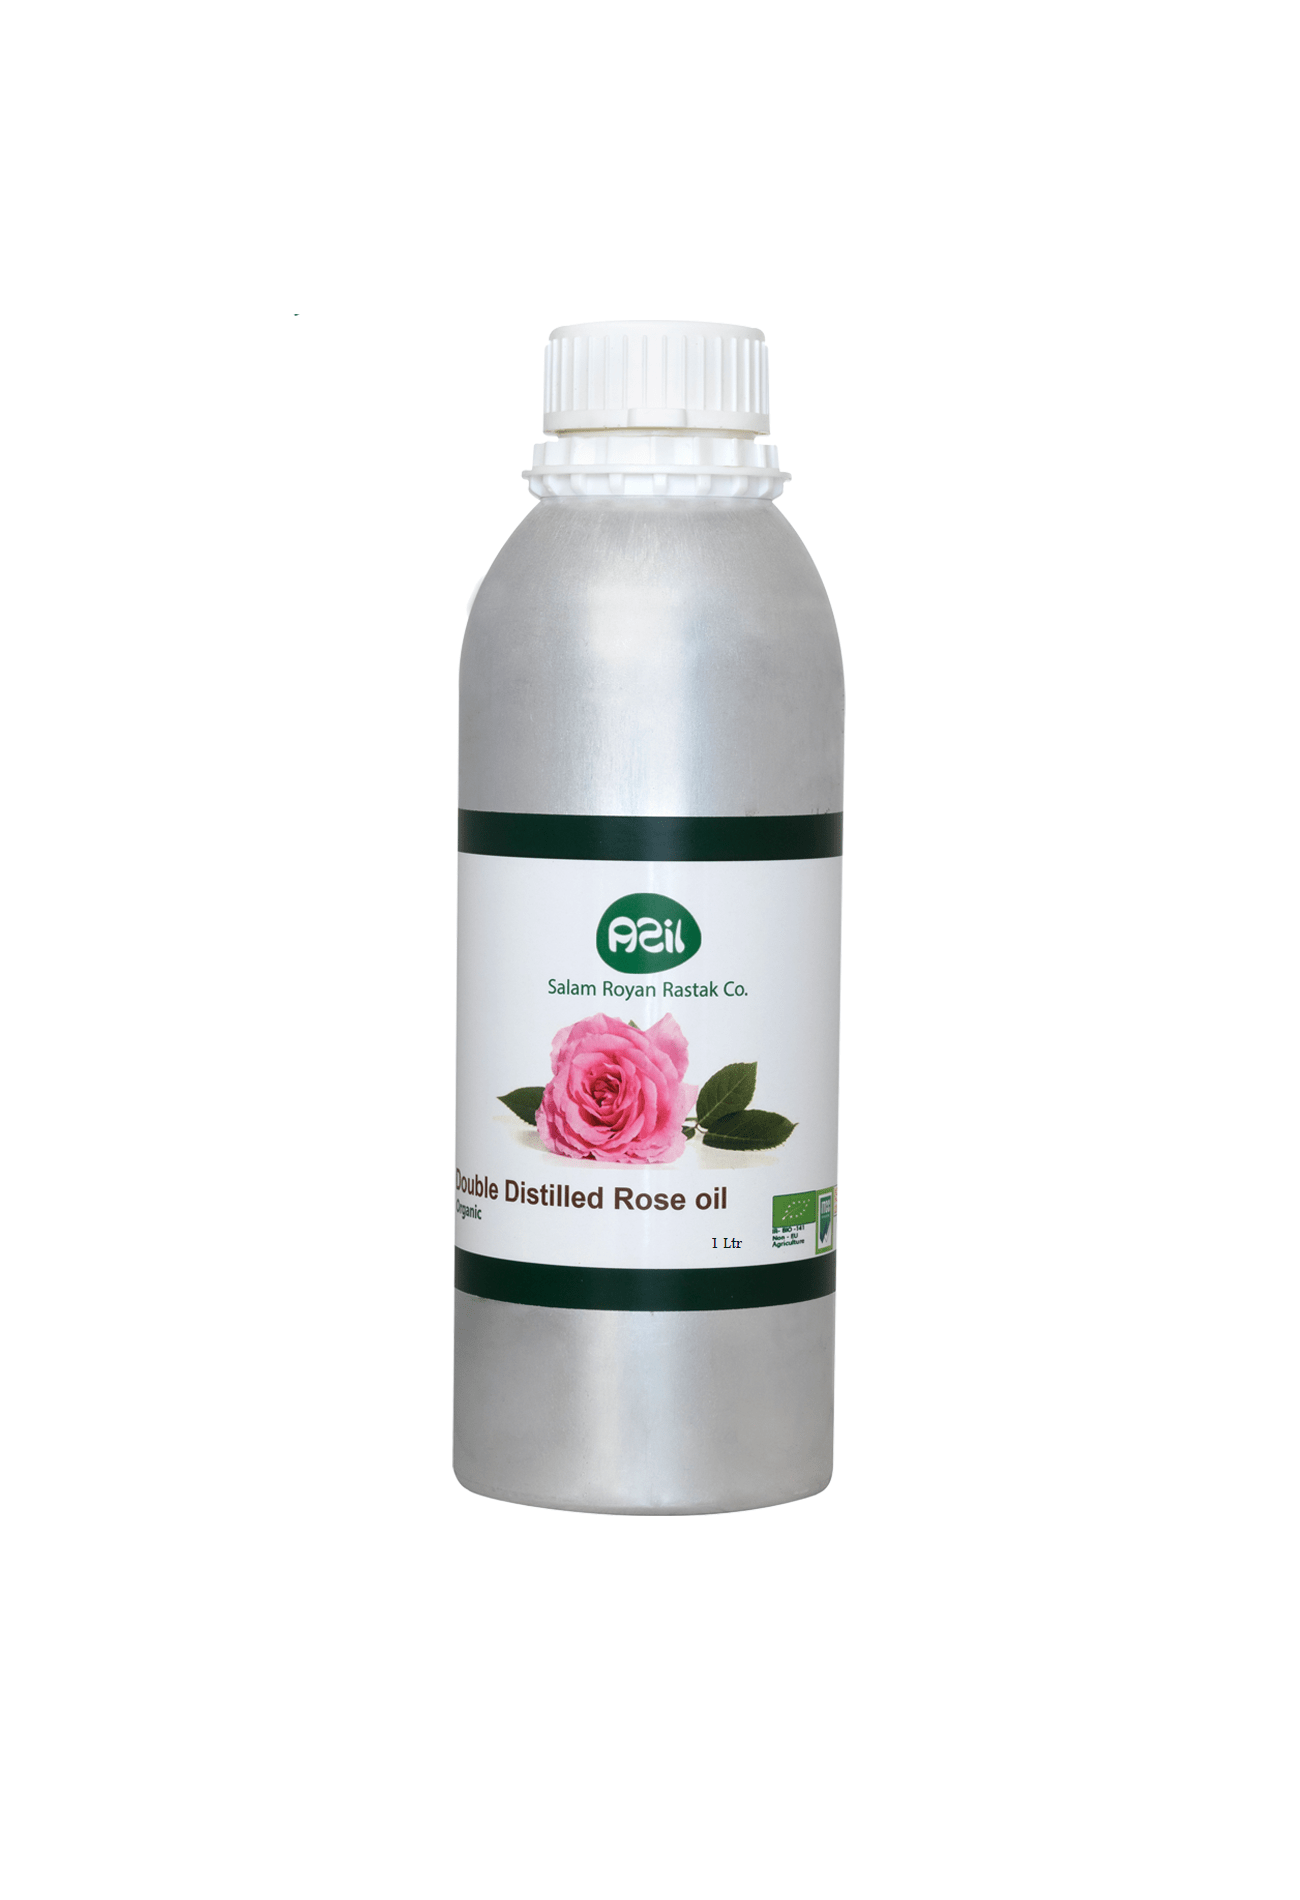 Duoble distilate rose  - Azil Double Distilled Rose Oil